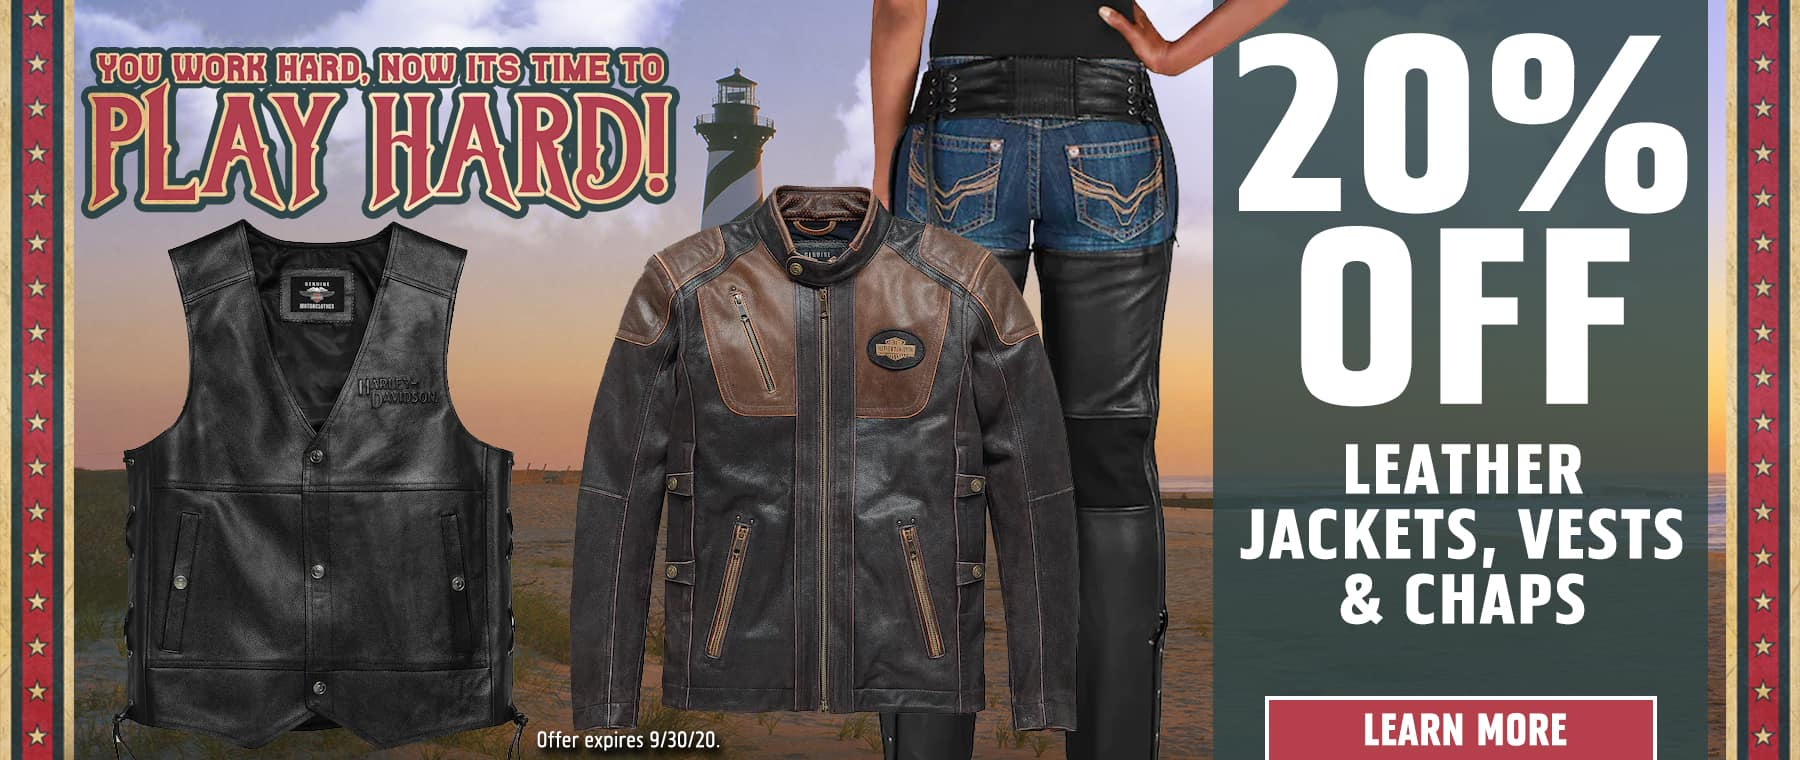 20% OFF Leather Jackets, Vests & Chaps